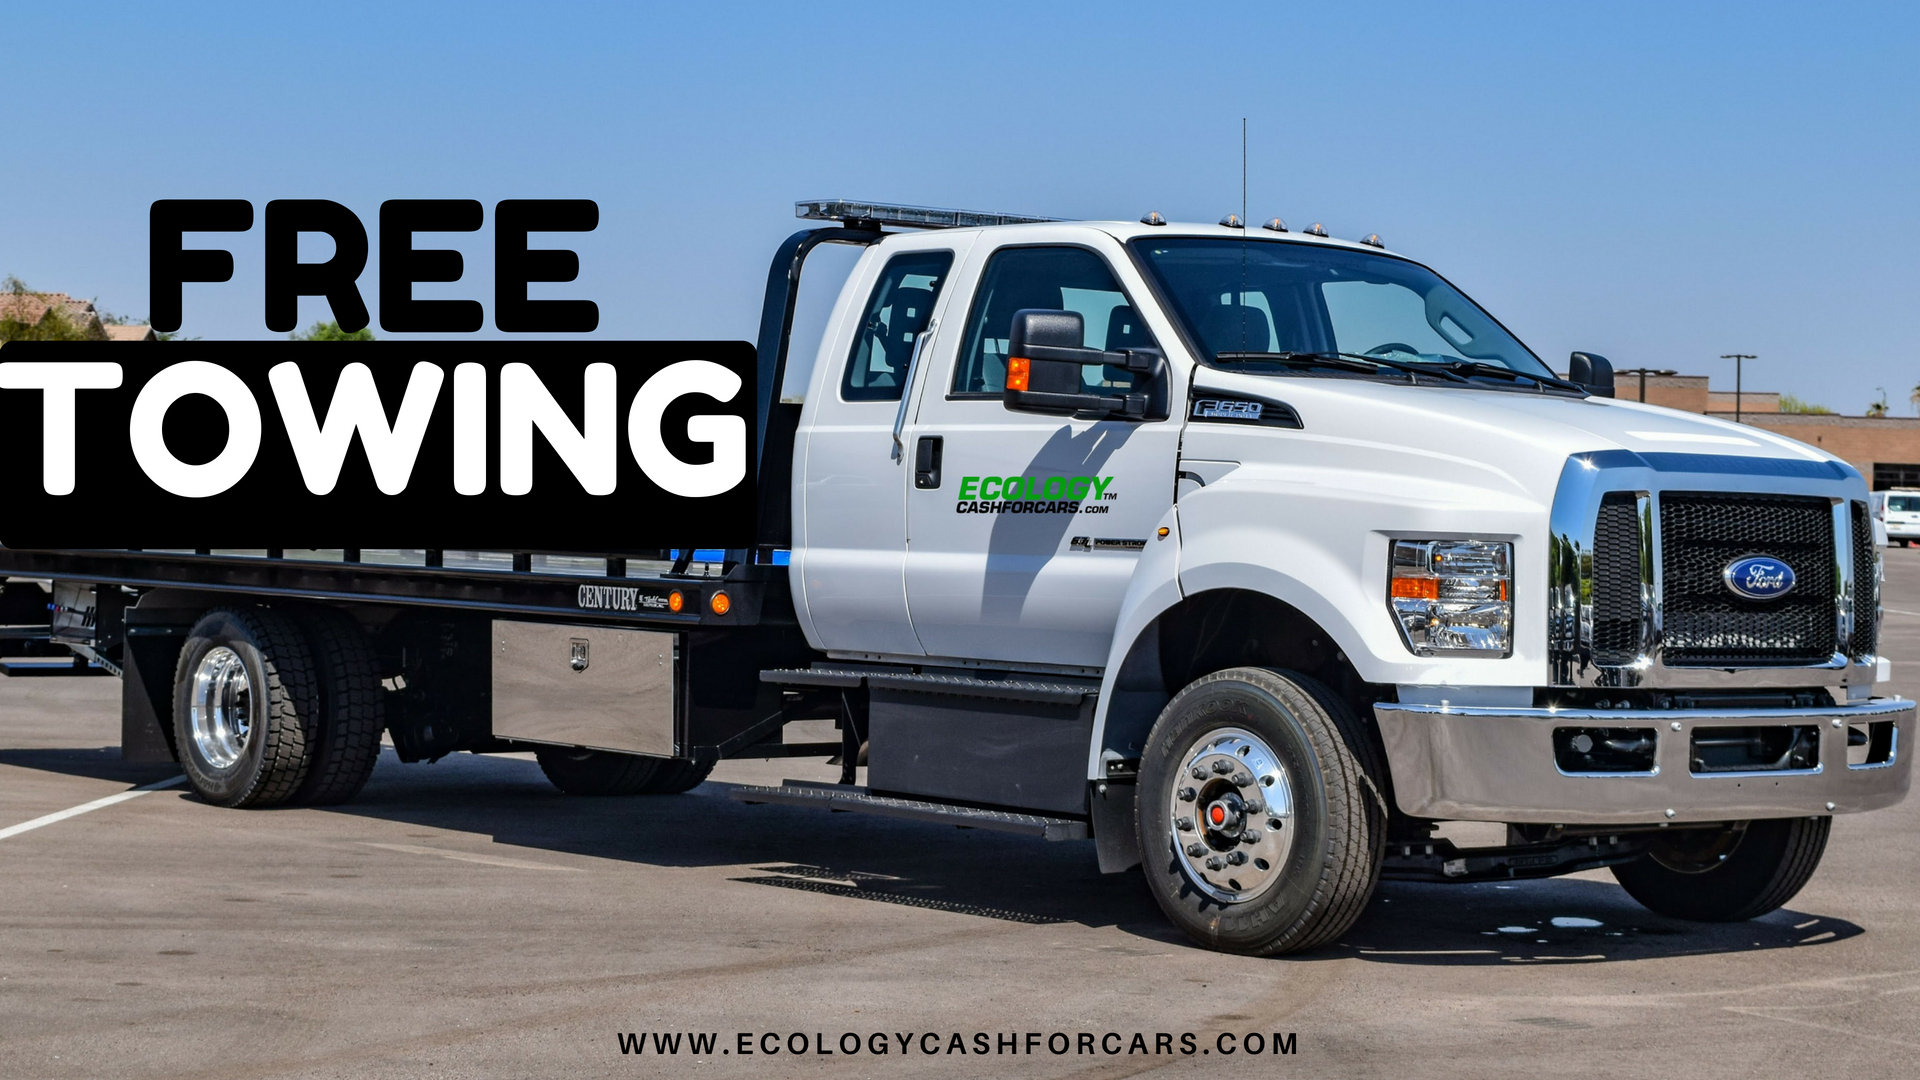 Ecology Cash For Cars Serves all San Diego County. Junk Any Car or Truck Running or Not, Towing Is Free. Call us at (619) 272-2054 www.ecologycashforcars.com